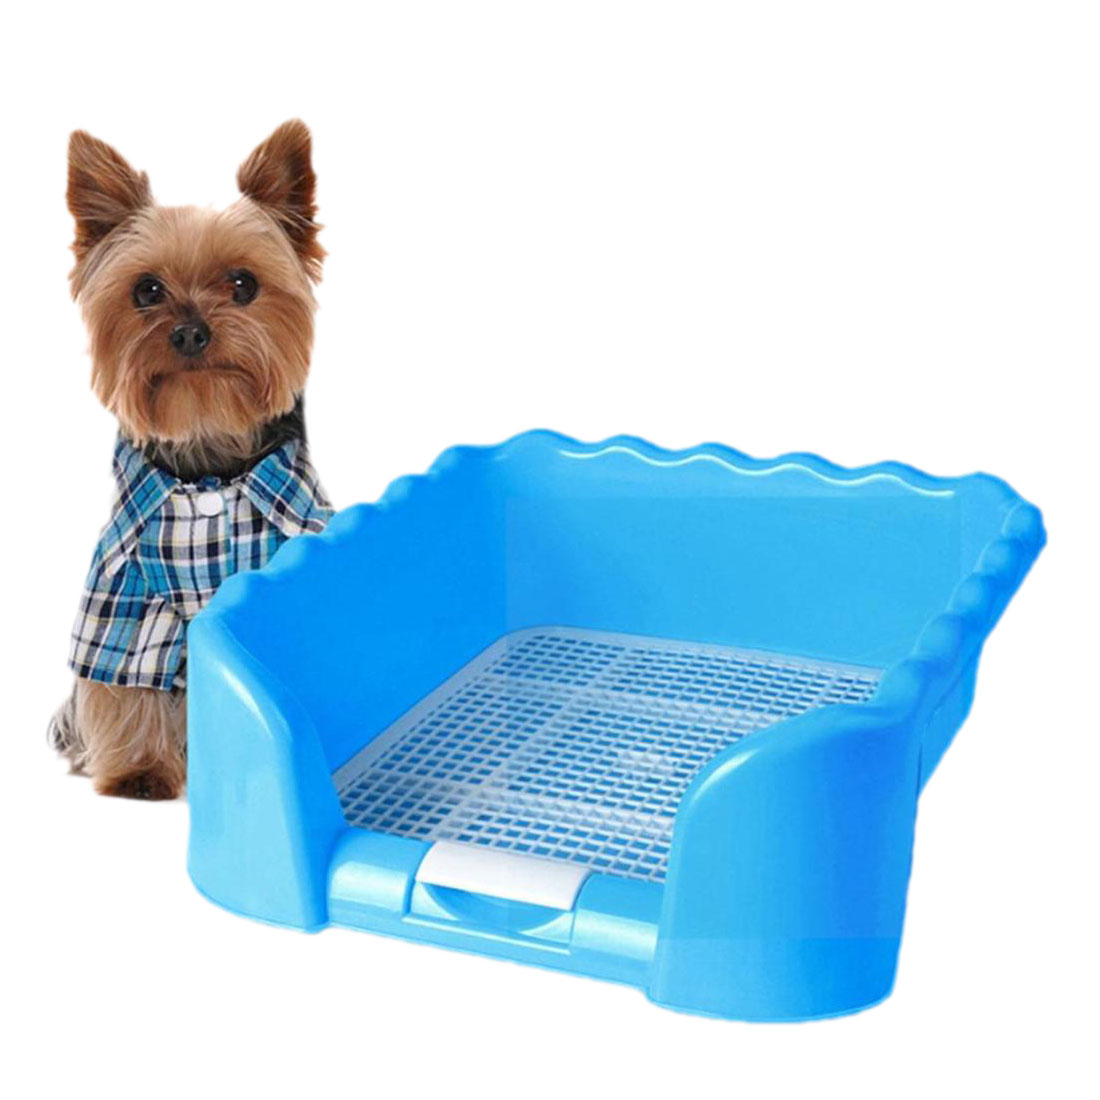 Portable Puppy Training Tray with Fence for Pet Dogs and Cats Potty and Pee Training Indoor 12